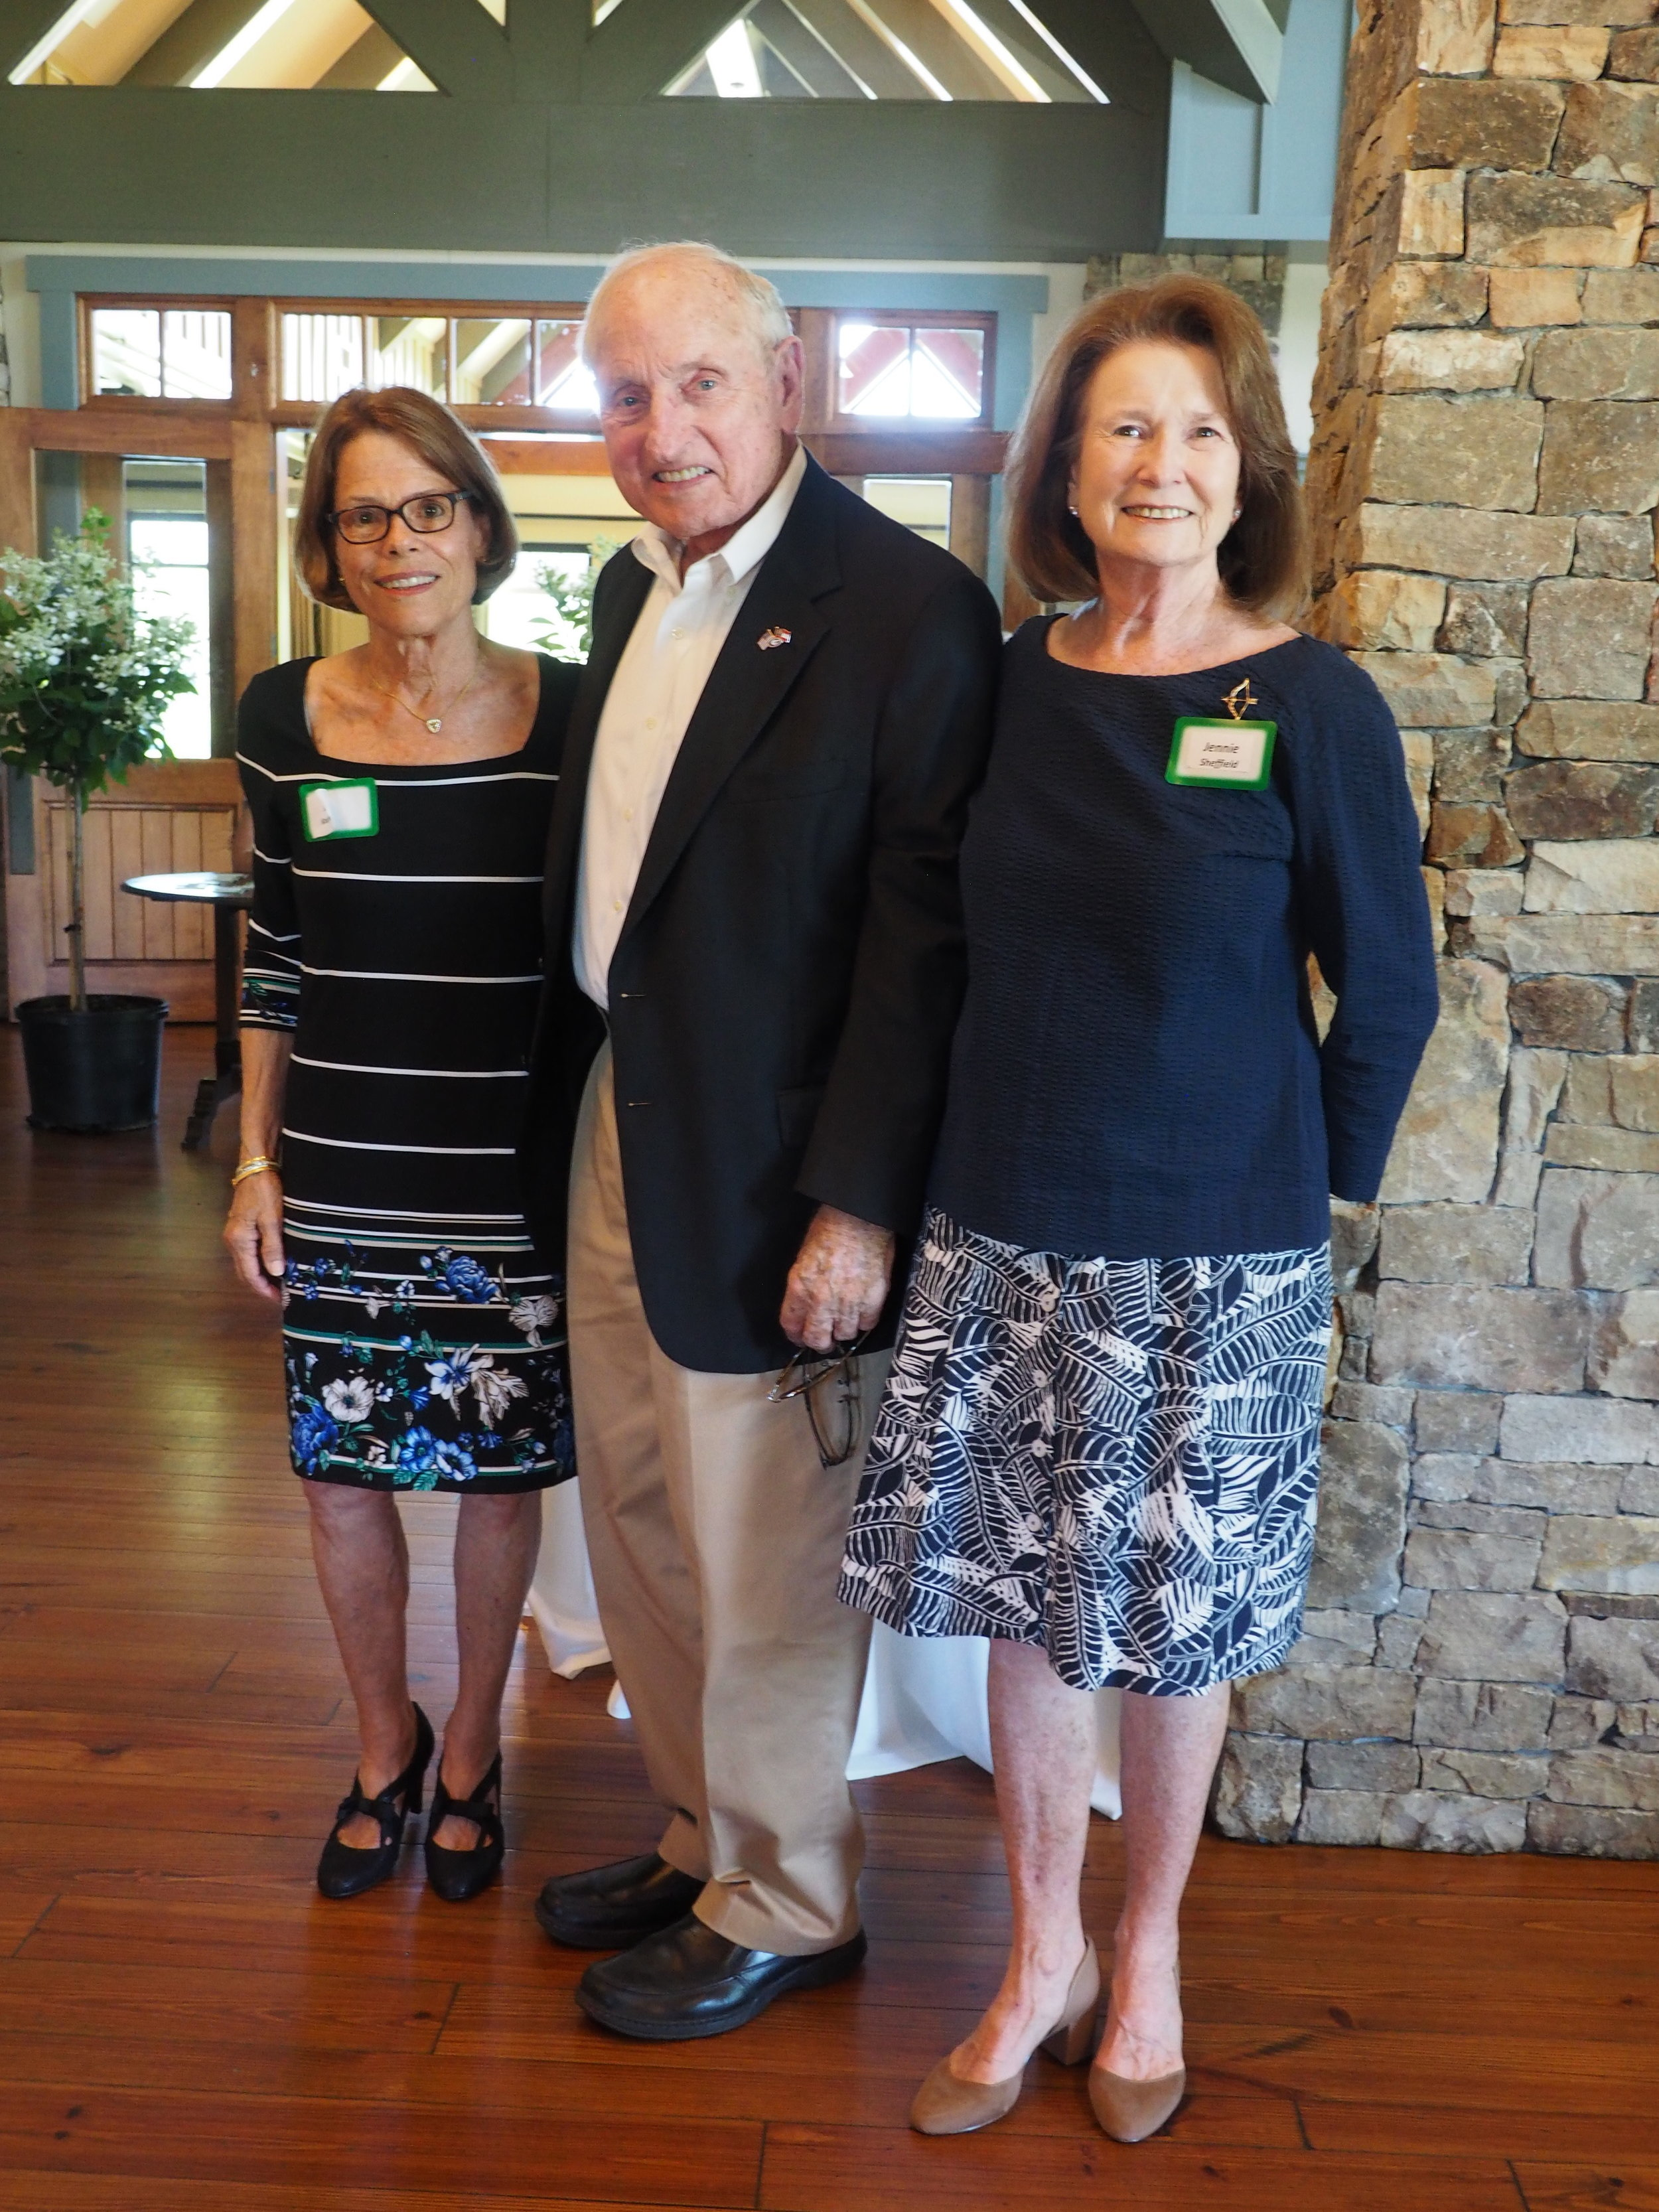 Judy Kaufman and Jennie Sheffield welcome a master of gardening and the former University of Georgia's Coach Vince Dooley, guest speak for the WFB 25th Anniversary celebration.